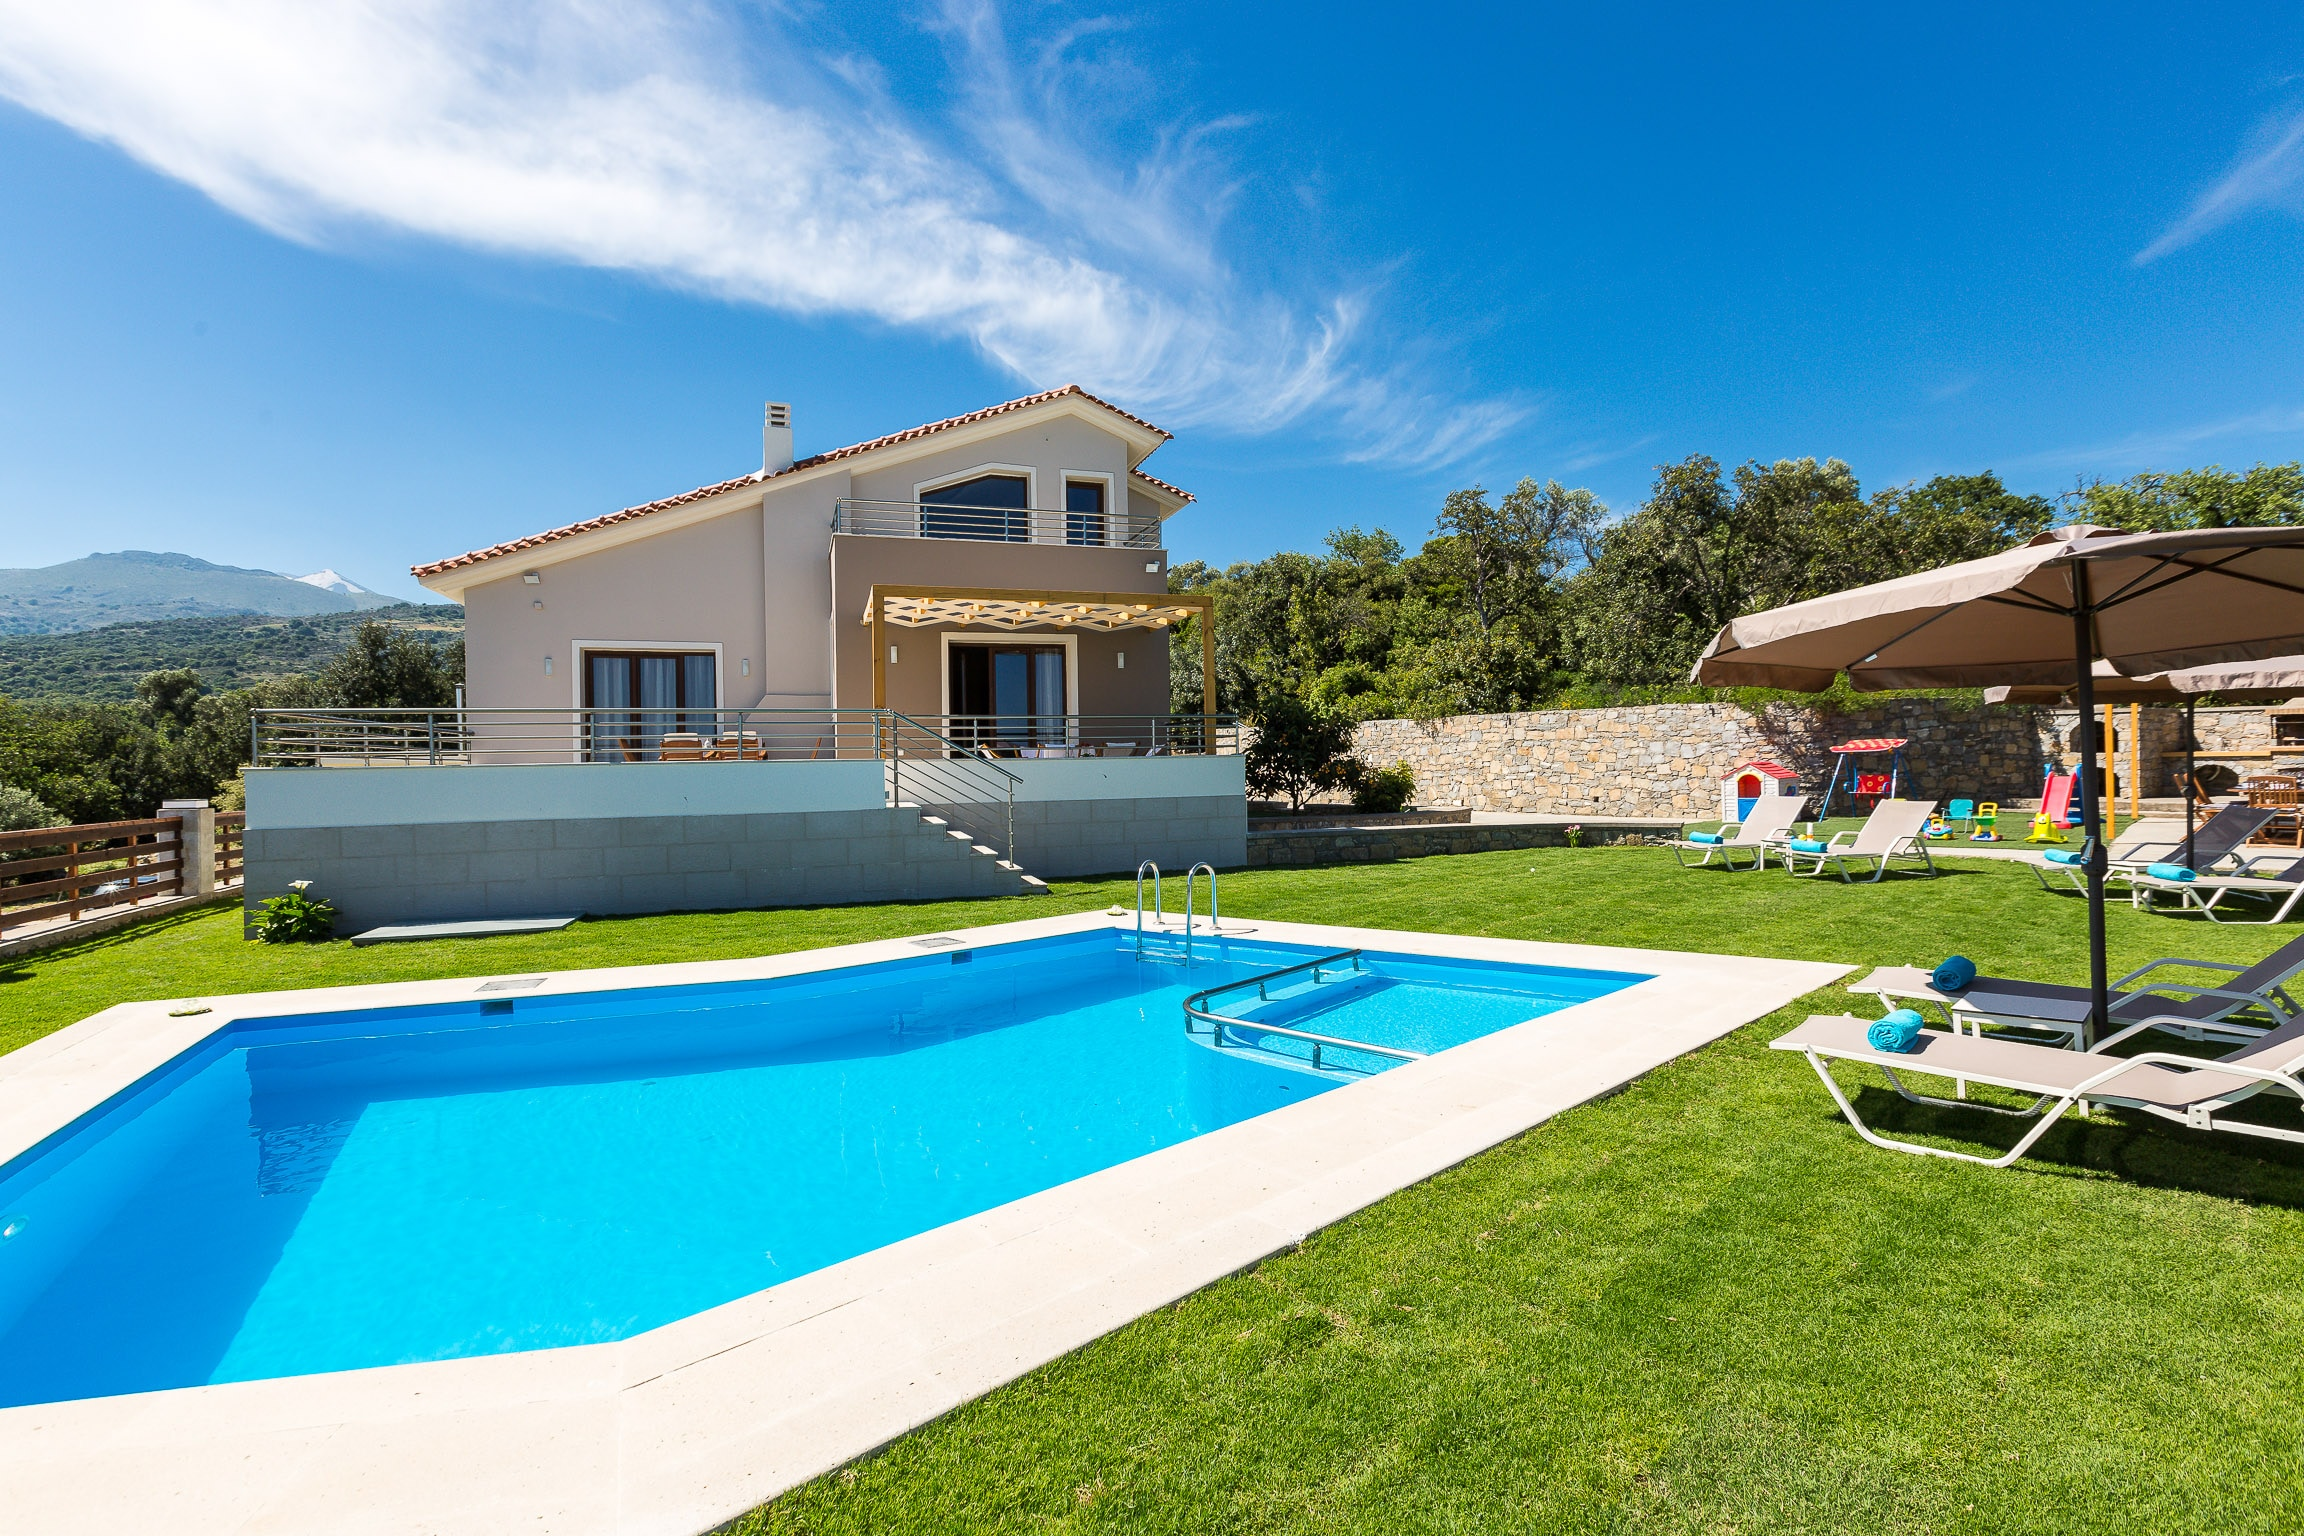 Property Image 1 - Tranquil Modern Villa with Private Pool & Landmark Views